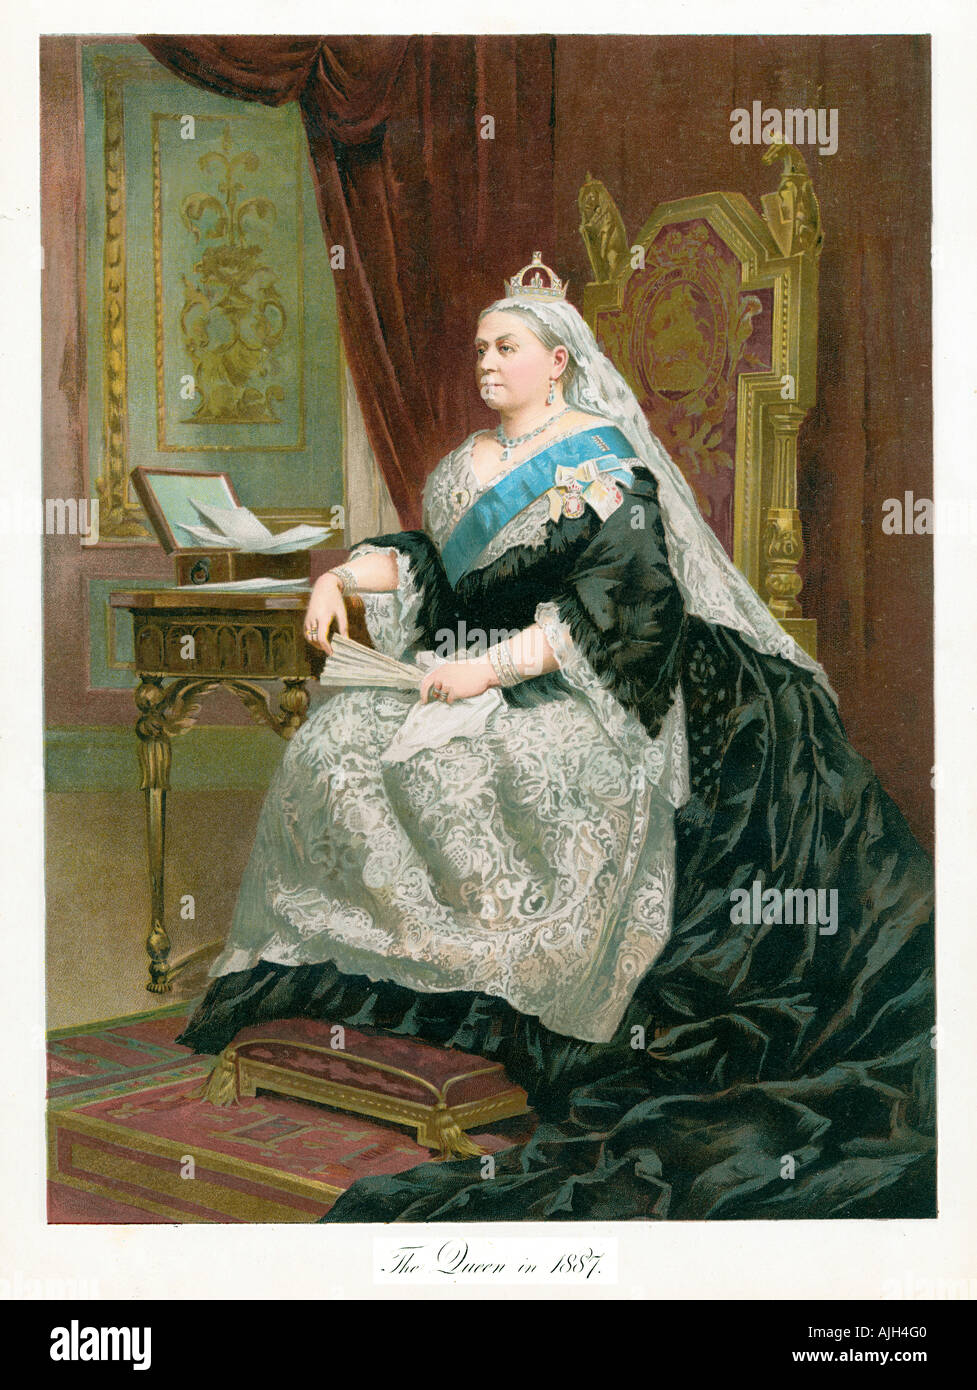 Queen Victoria in 1887, portrait from a souvenir publication to mark the Golden Jubilee of the Queen Empress - Stock Image